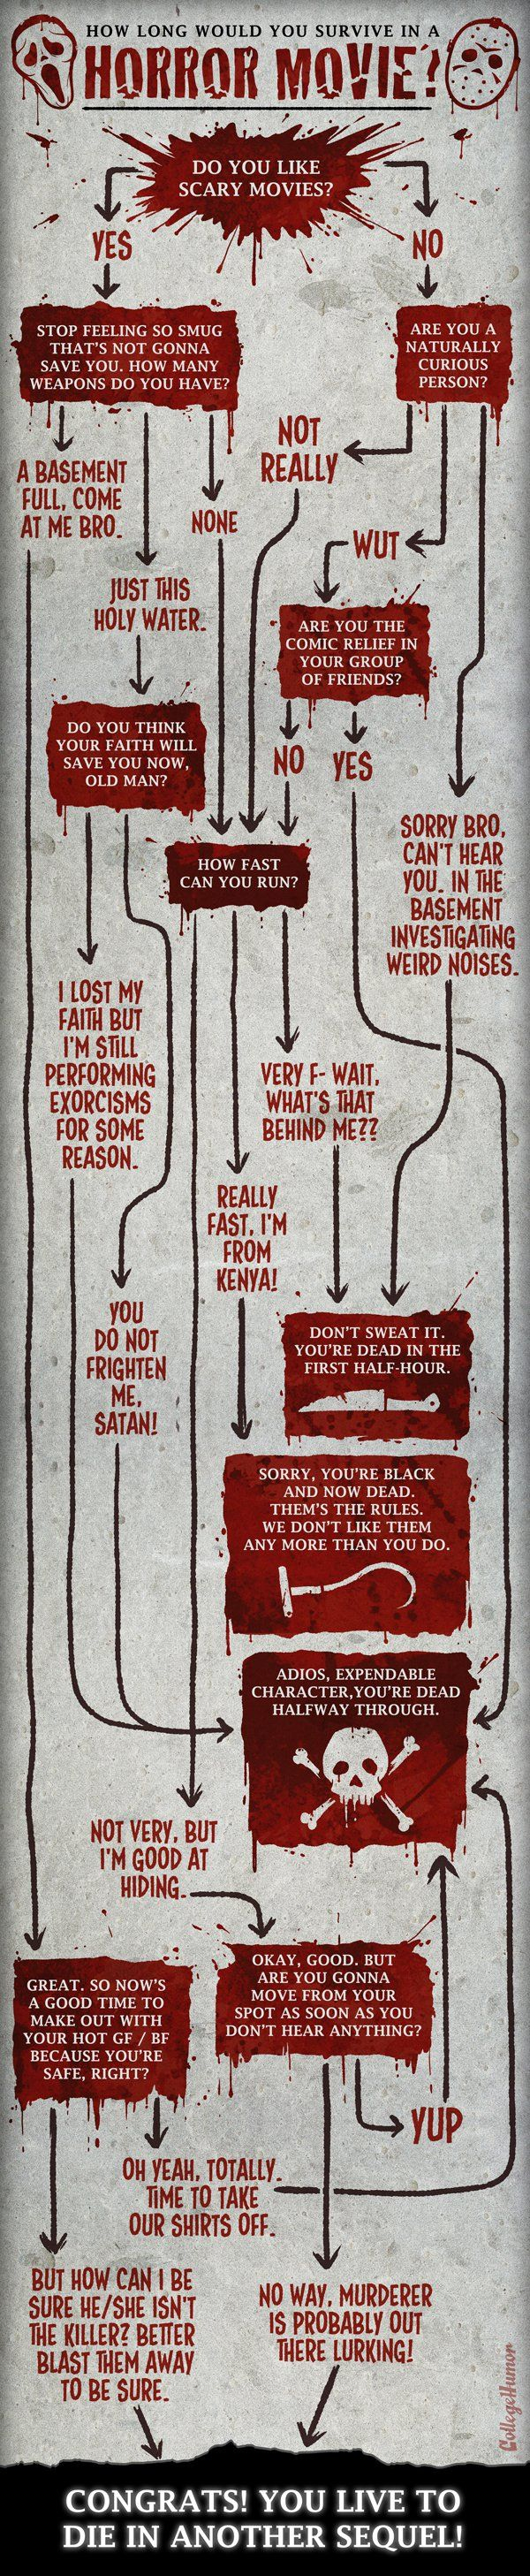 "Flowchart: How Long Would You Survive in a Horror Movie? (""WUT?"" ... DED. Comic relief, bro.)"